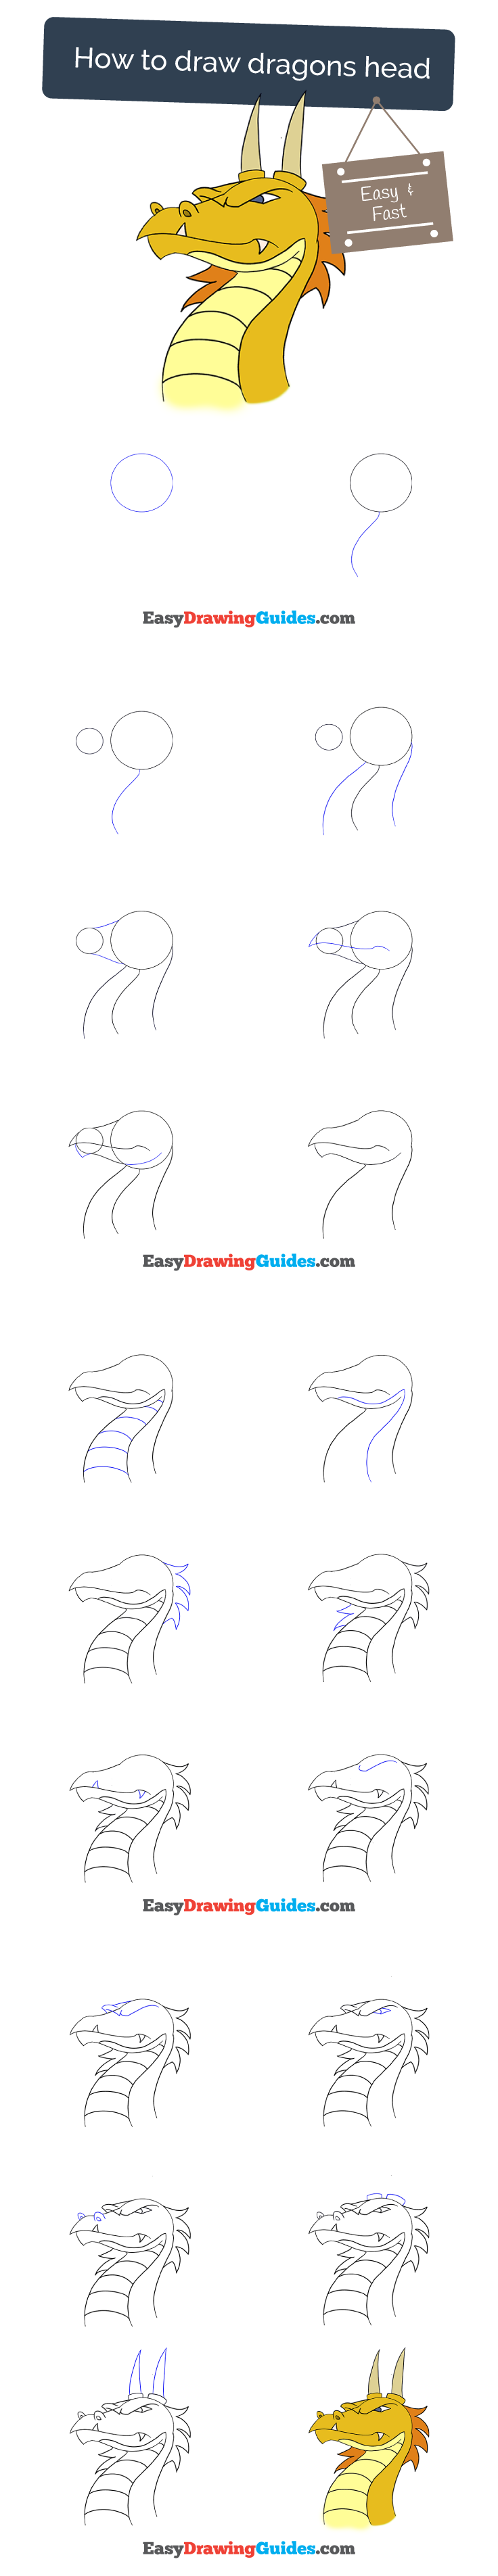 Learn How To Draw With Easy Step By Step Guides Dragon Draw